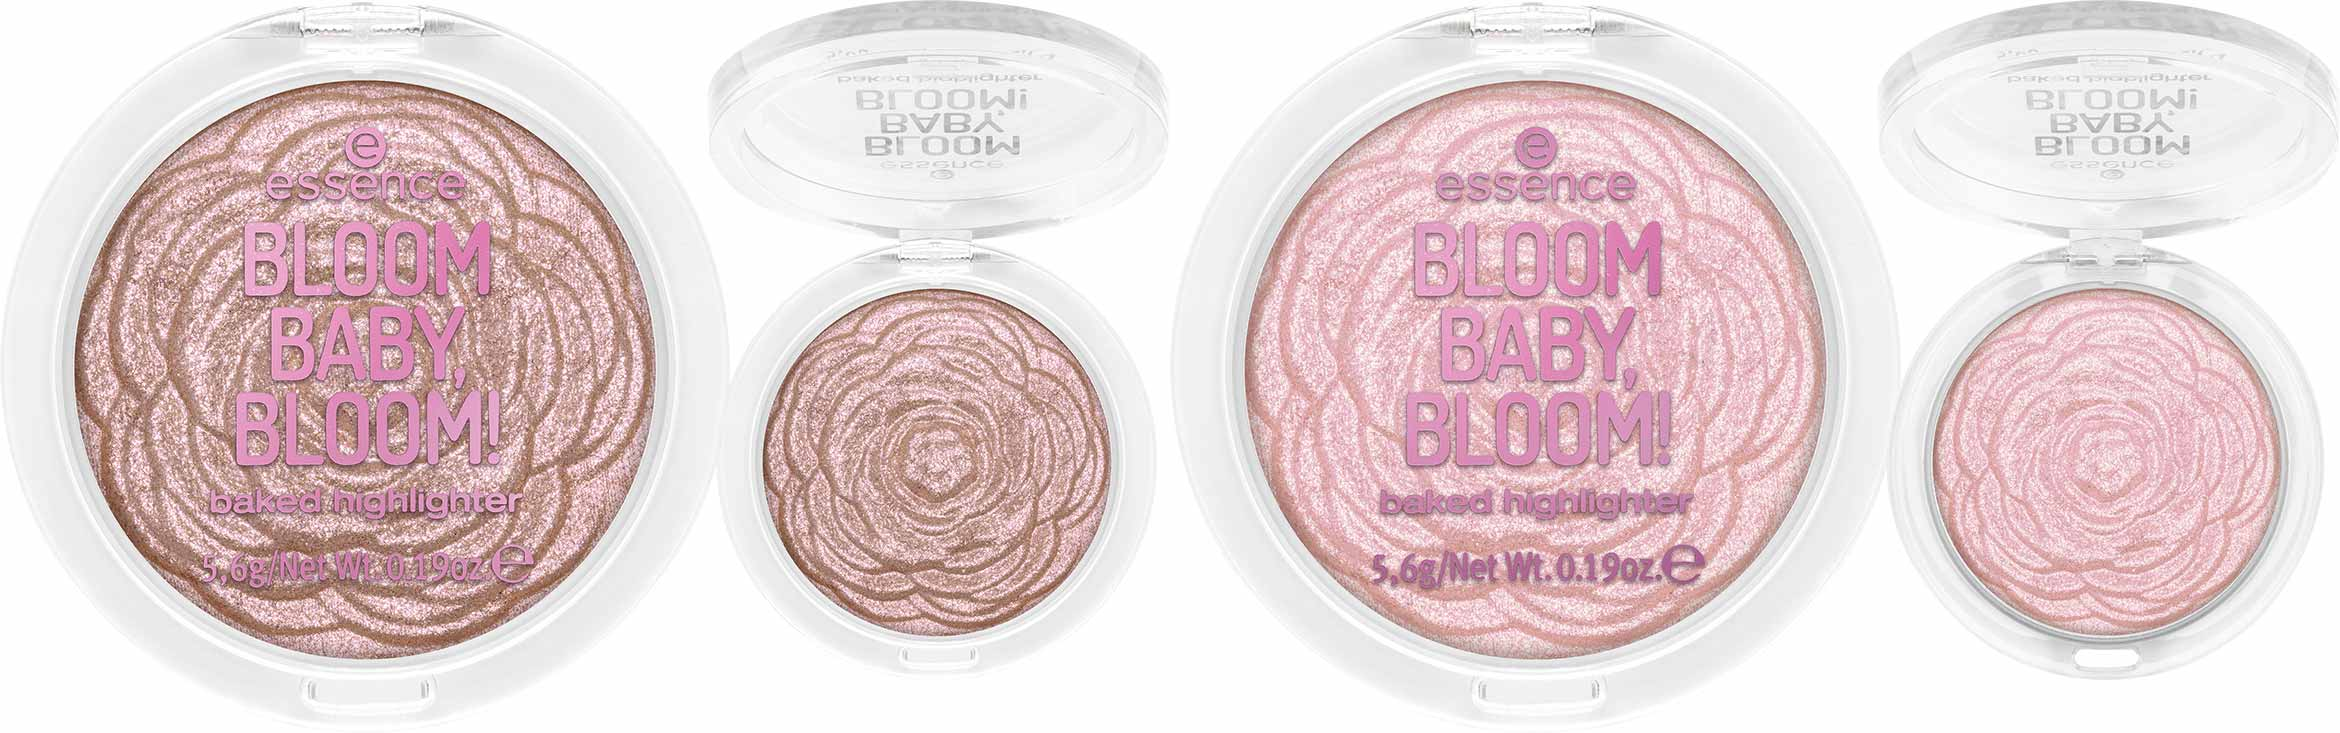 essence bloom baby bloom baked highlighter